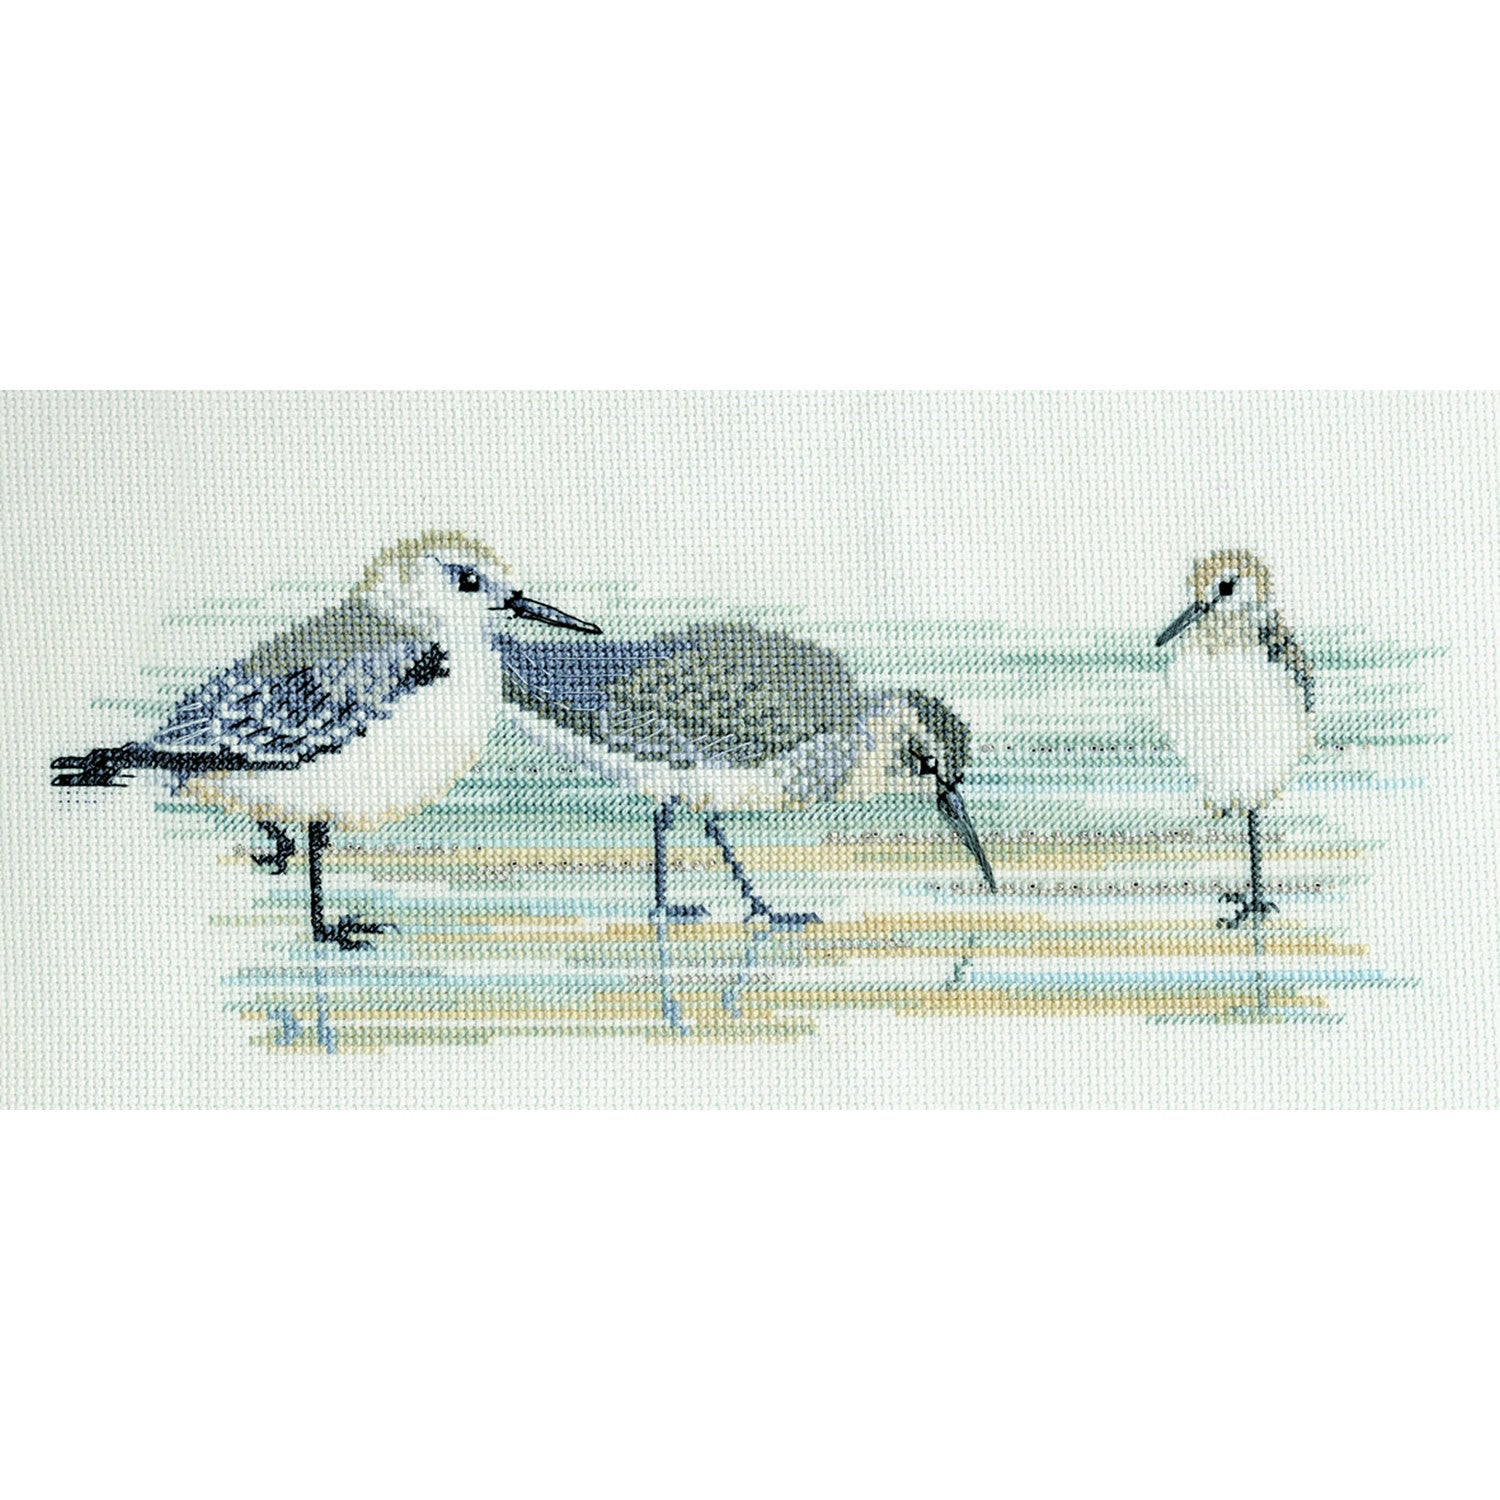 Waders Counted Cross Stitch Kit